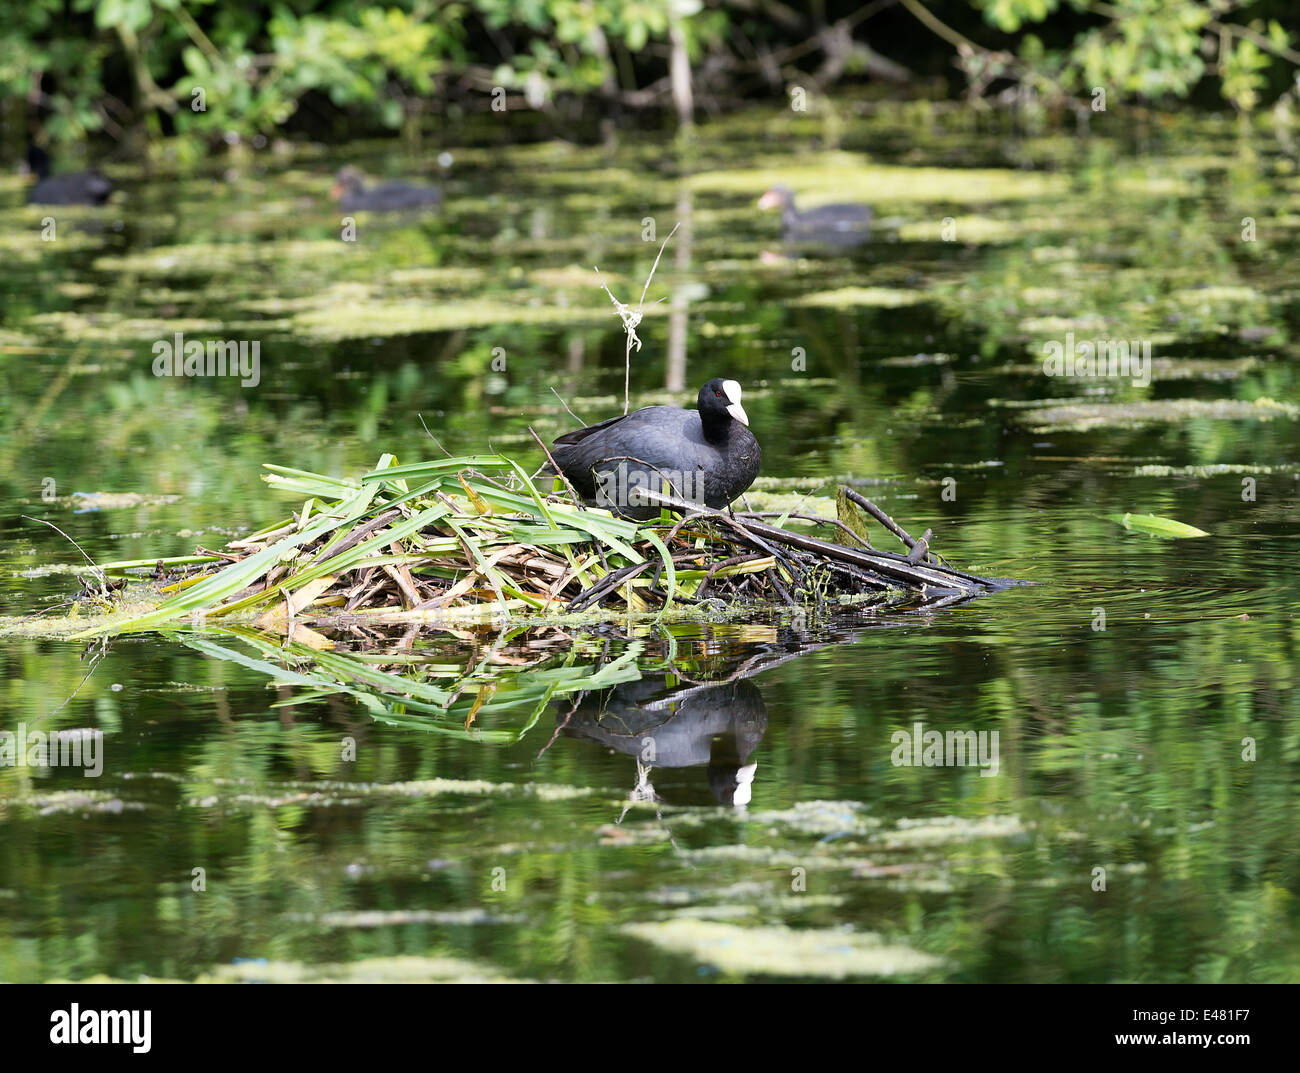 A Coot on Its Nest in a Pond at Fairburn Ings near Castleford West Yorkshire England United Kingdom UK - Stock Image